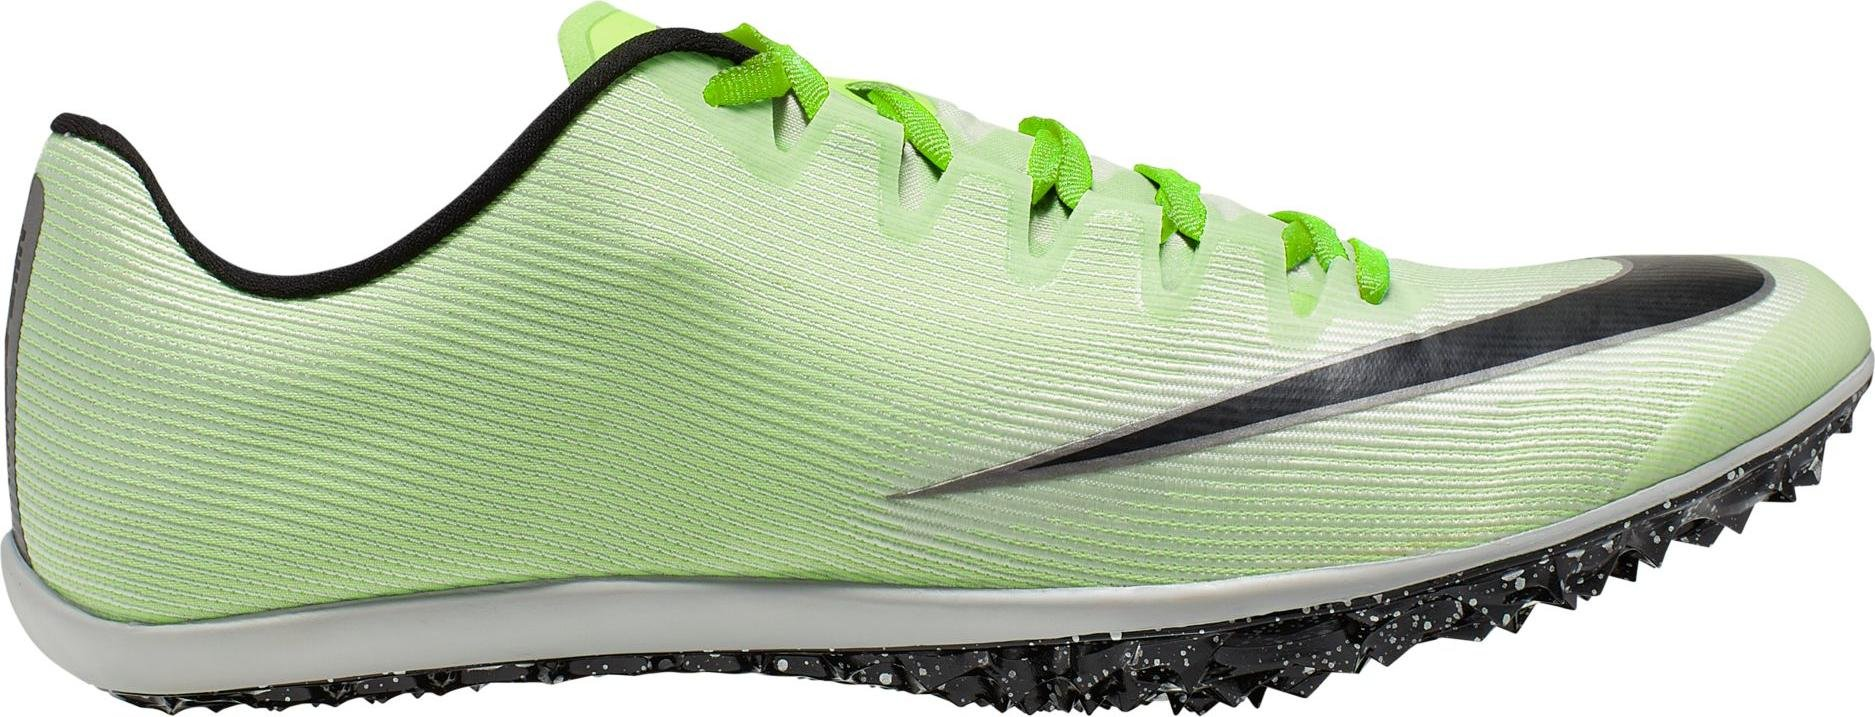 Track shoes/Spikes Nike ZOOM 400